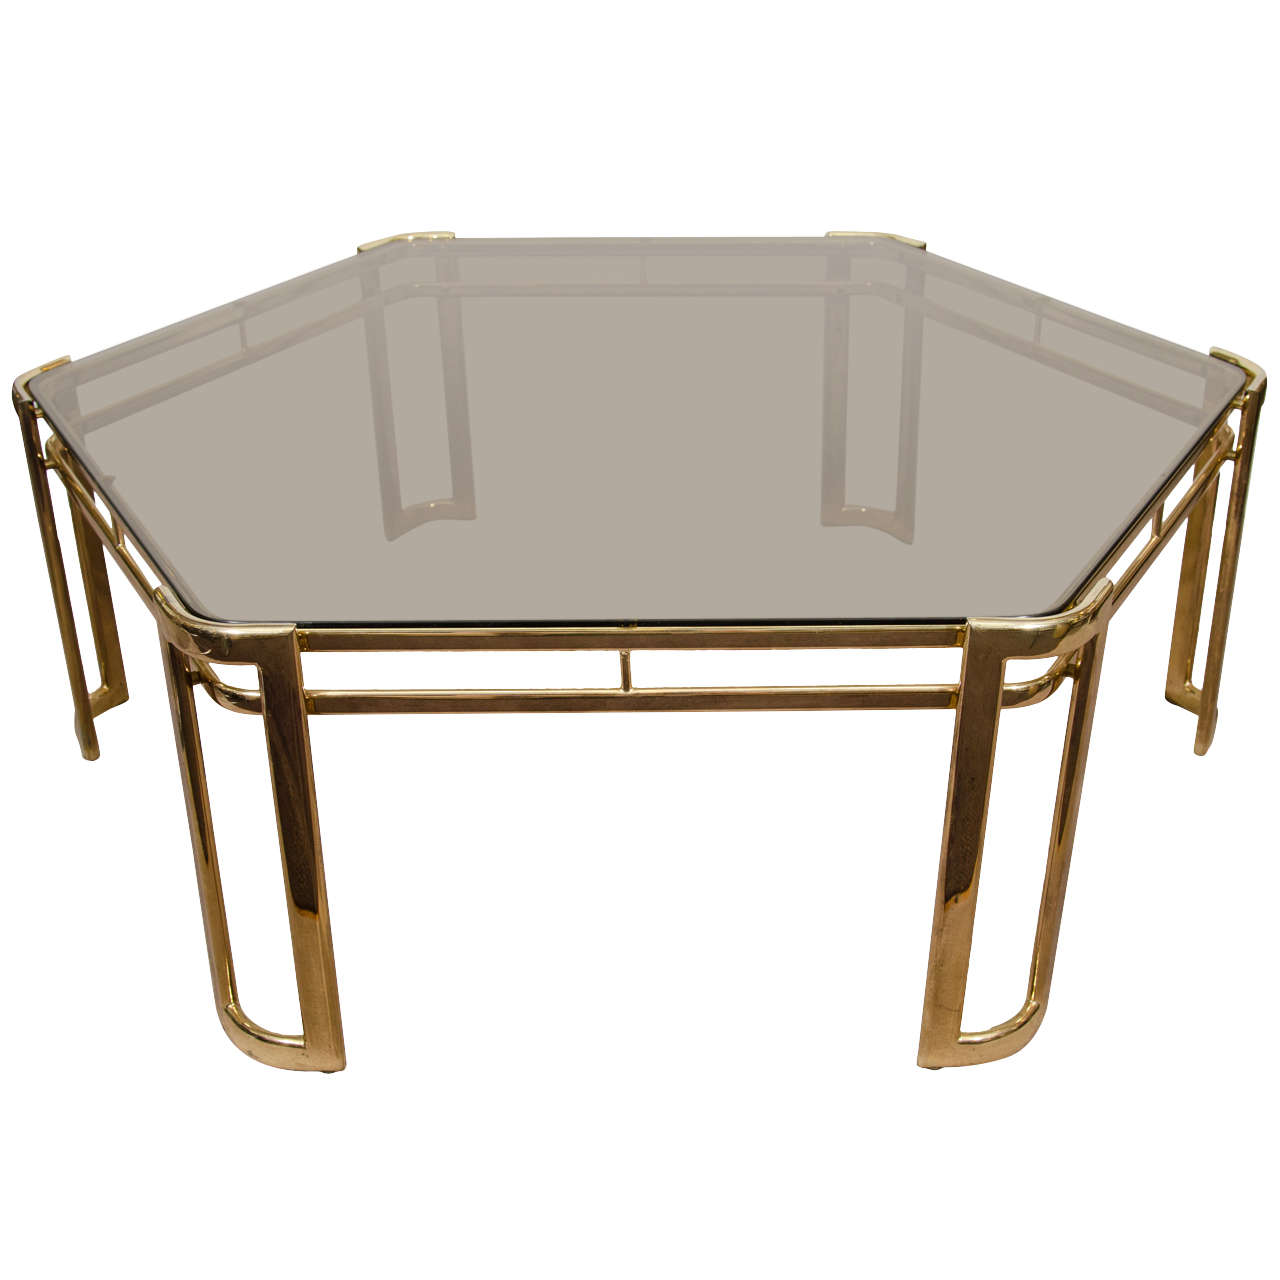 Https 1stdibs Com Furniture Tables Coffee Tables Cocktail Tables Midcentury Brass Plated Hexagonal Coffee Cocktail Table Id F 1513223